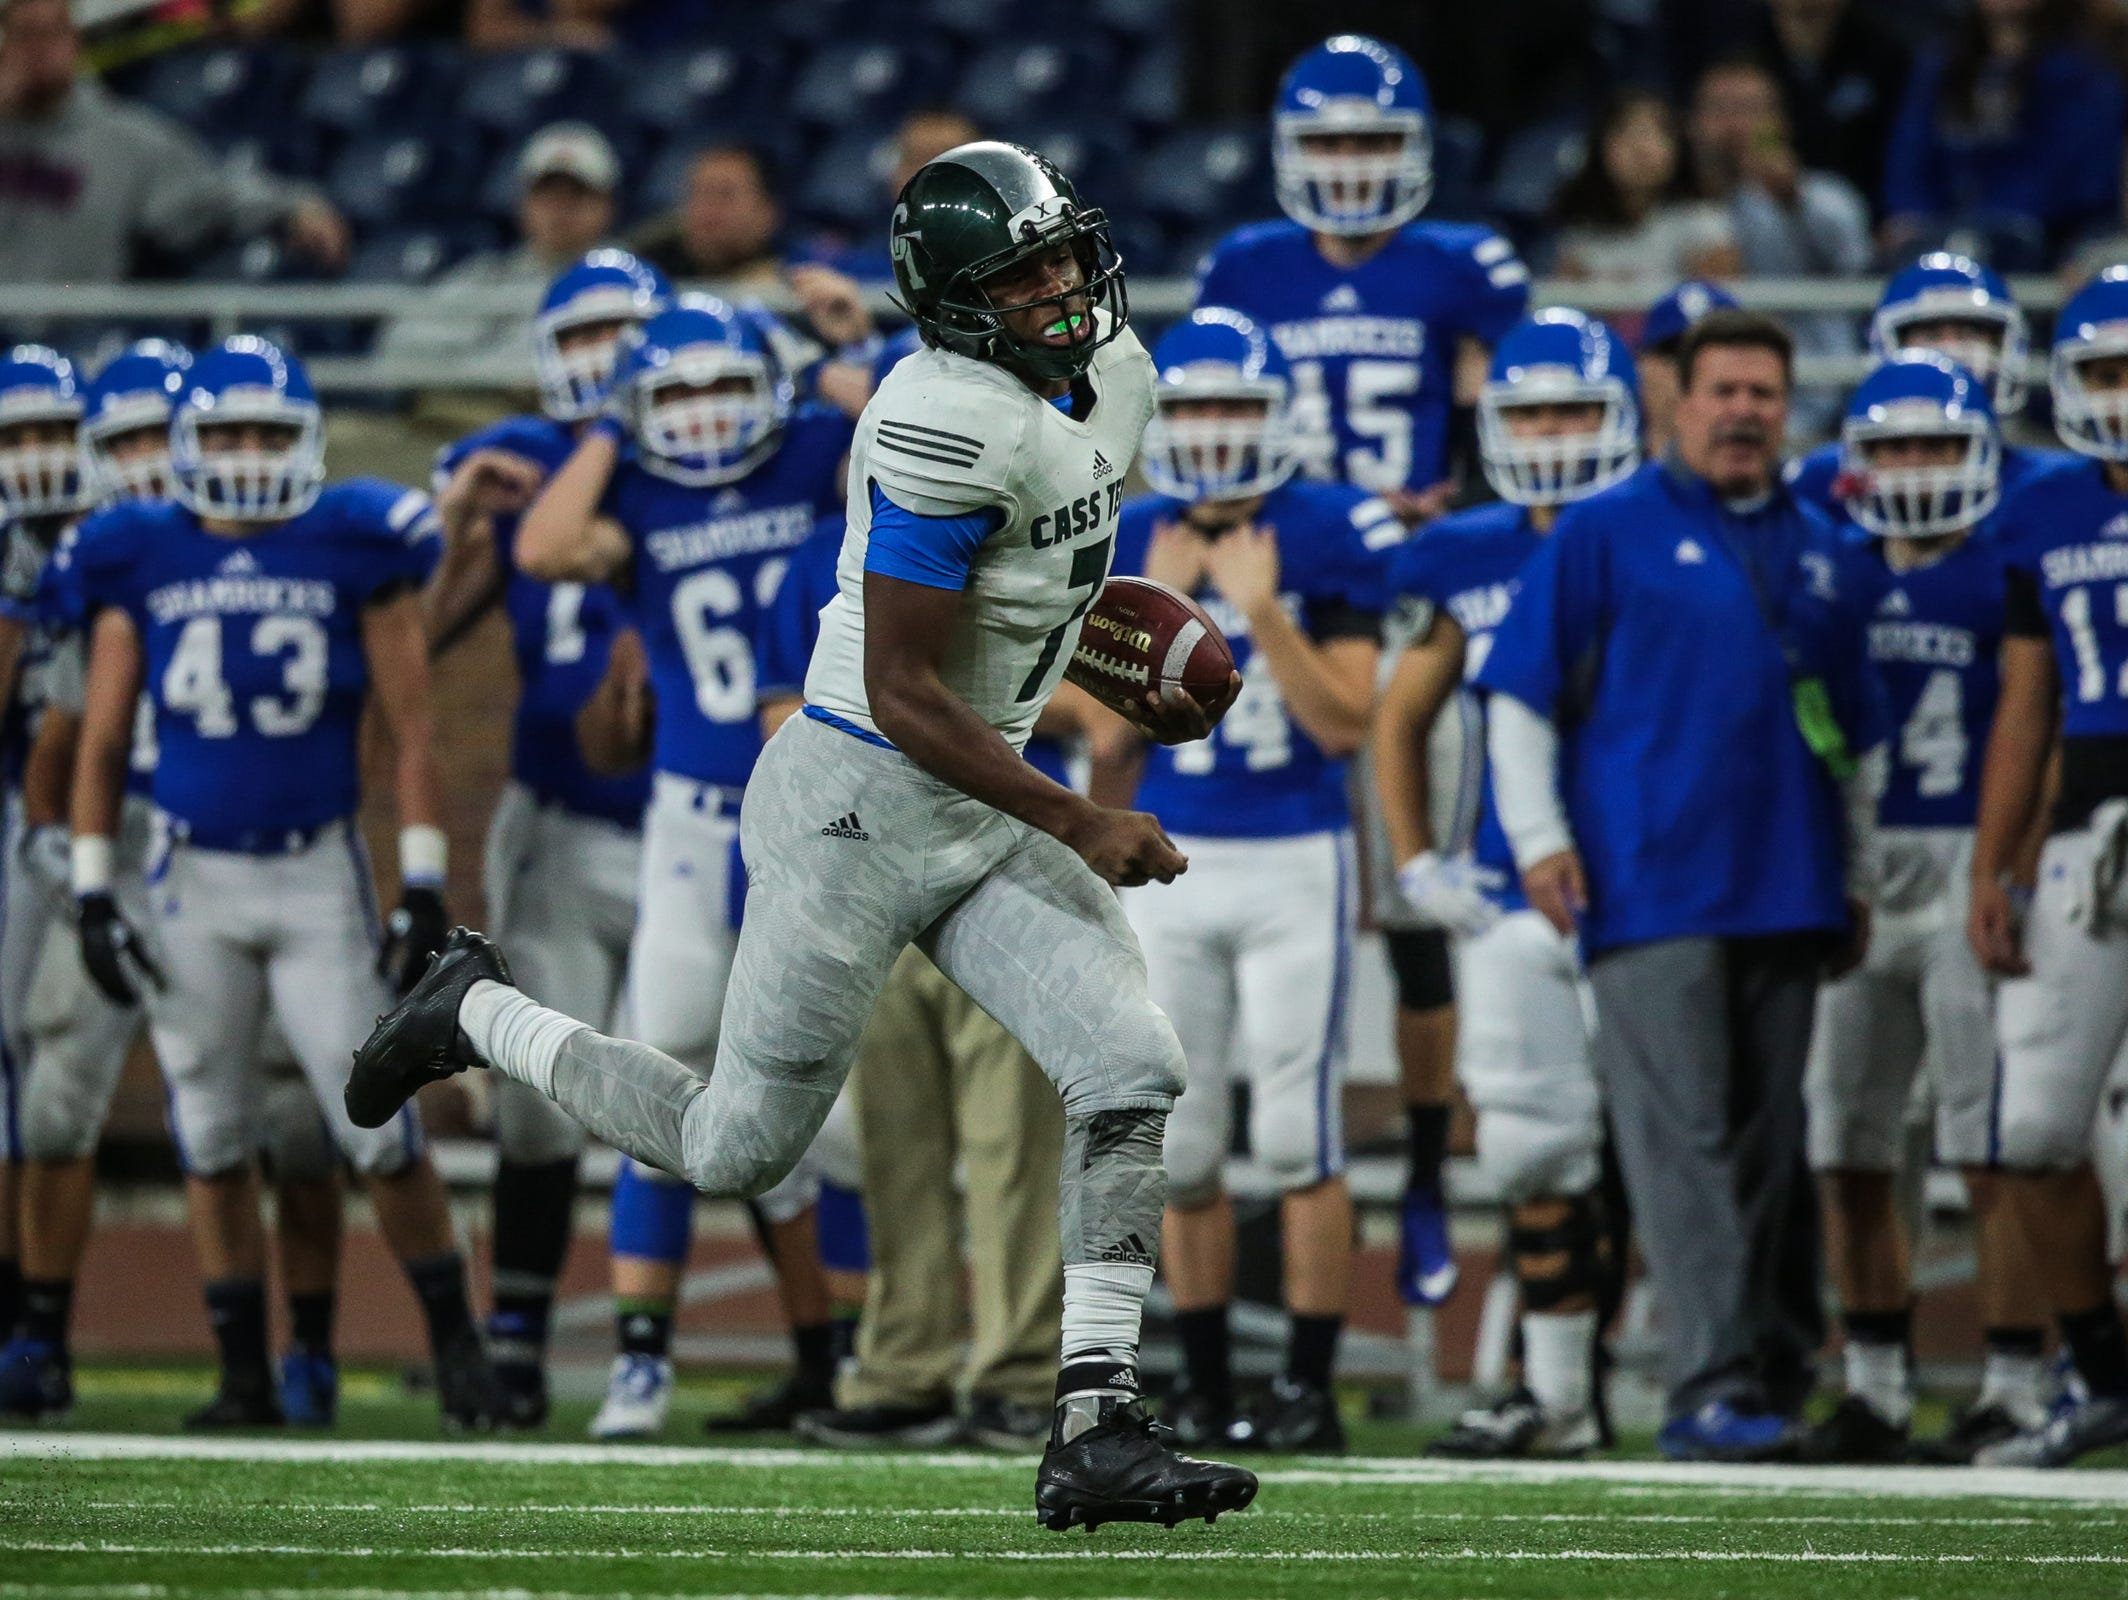 Detroit Cass Tech's Hall Rodney (7) runs the ball against Detroit Catholic Central during the Division 1 High School Championship game on Saturday November 26, 2016, at Ford Field in Detroit, MI.